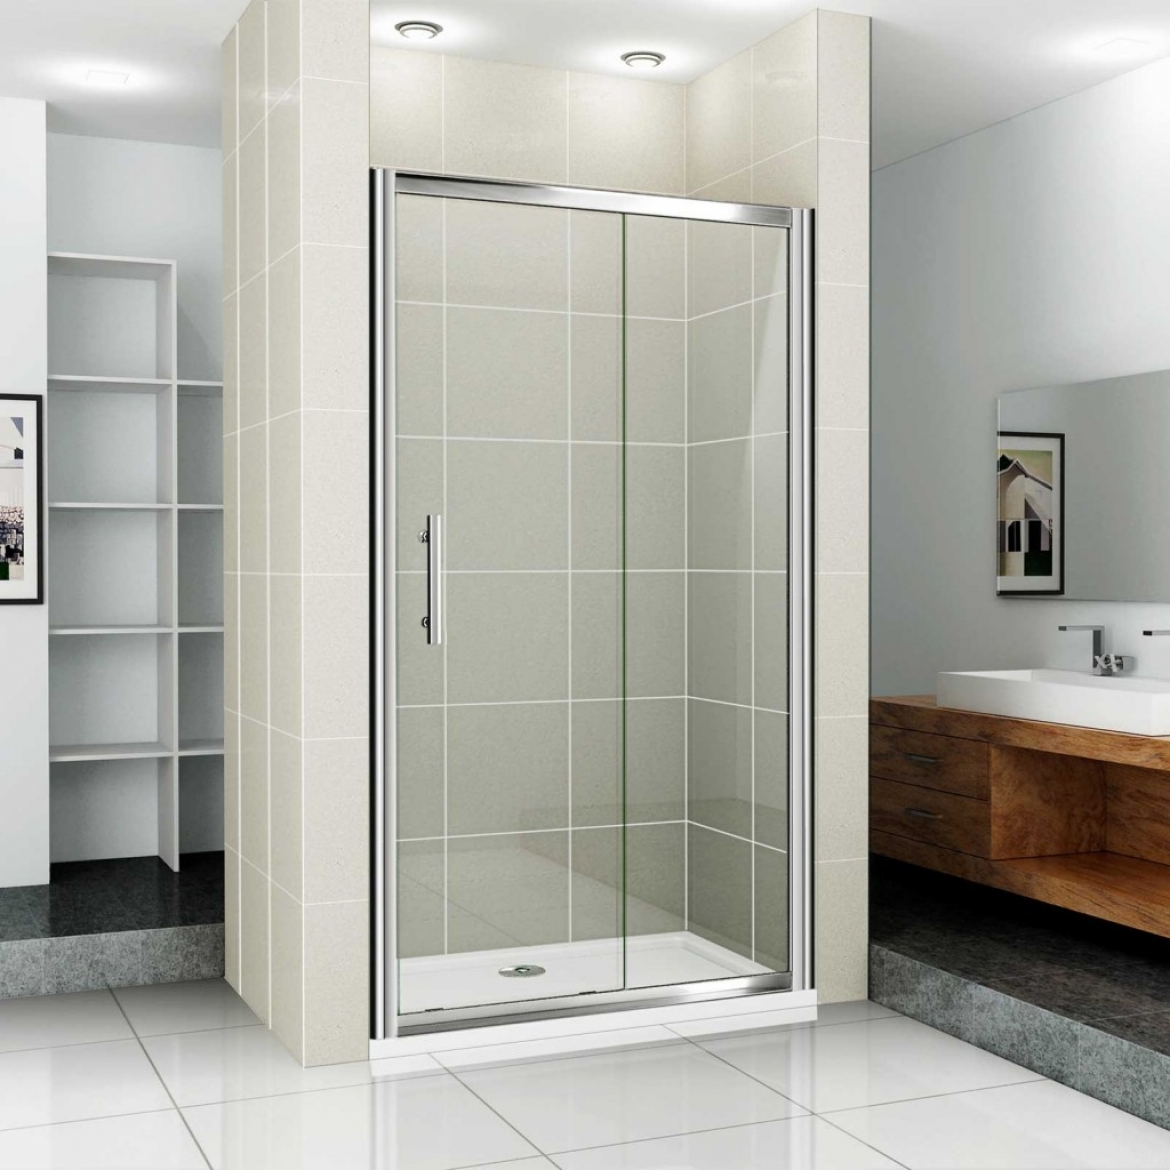 Wall to wall sliding shower screen [1400 mm]